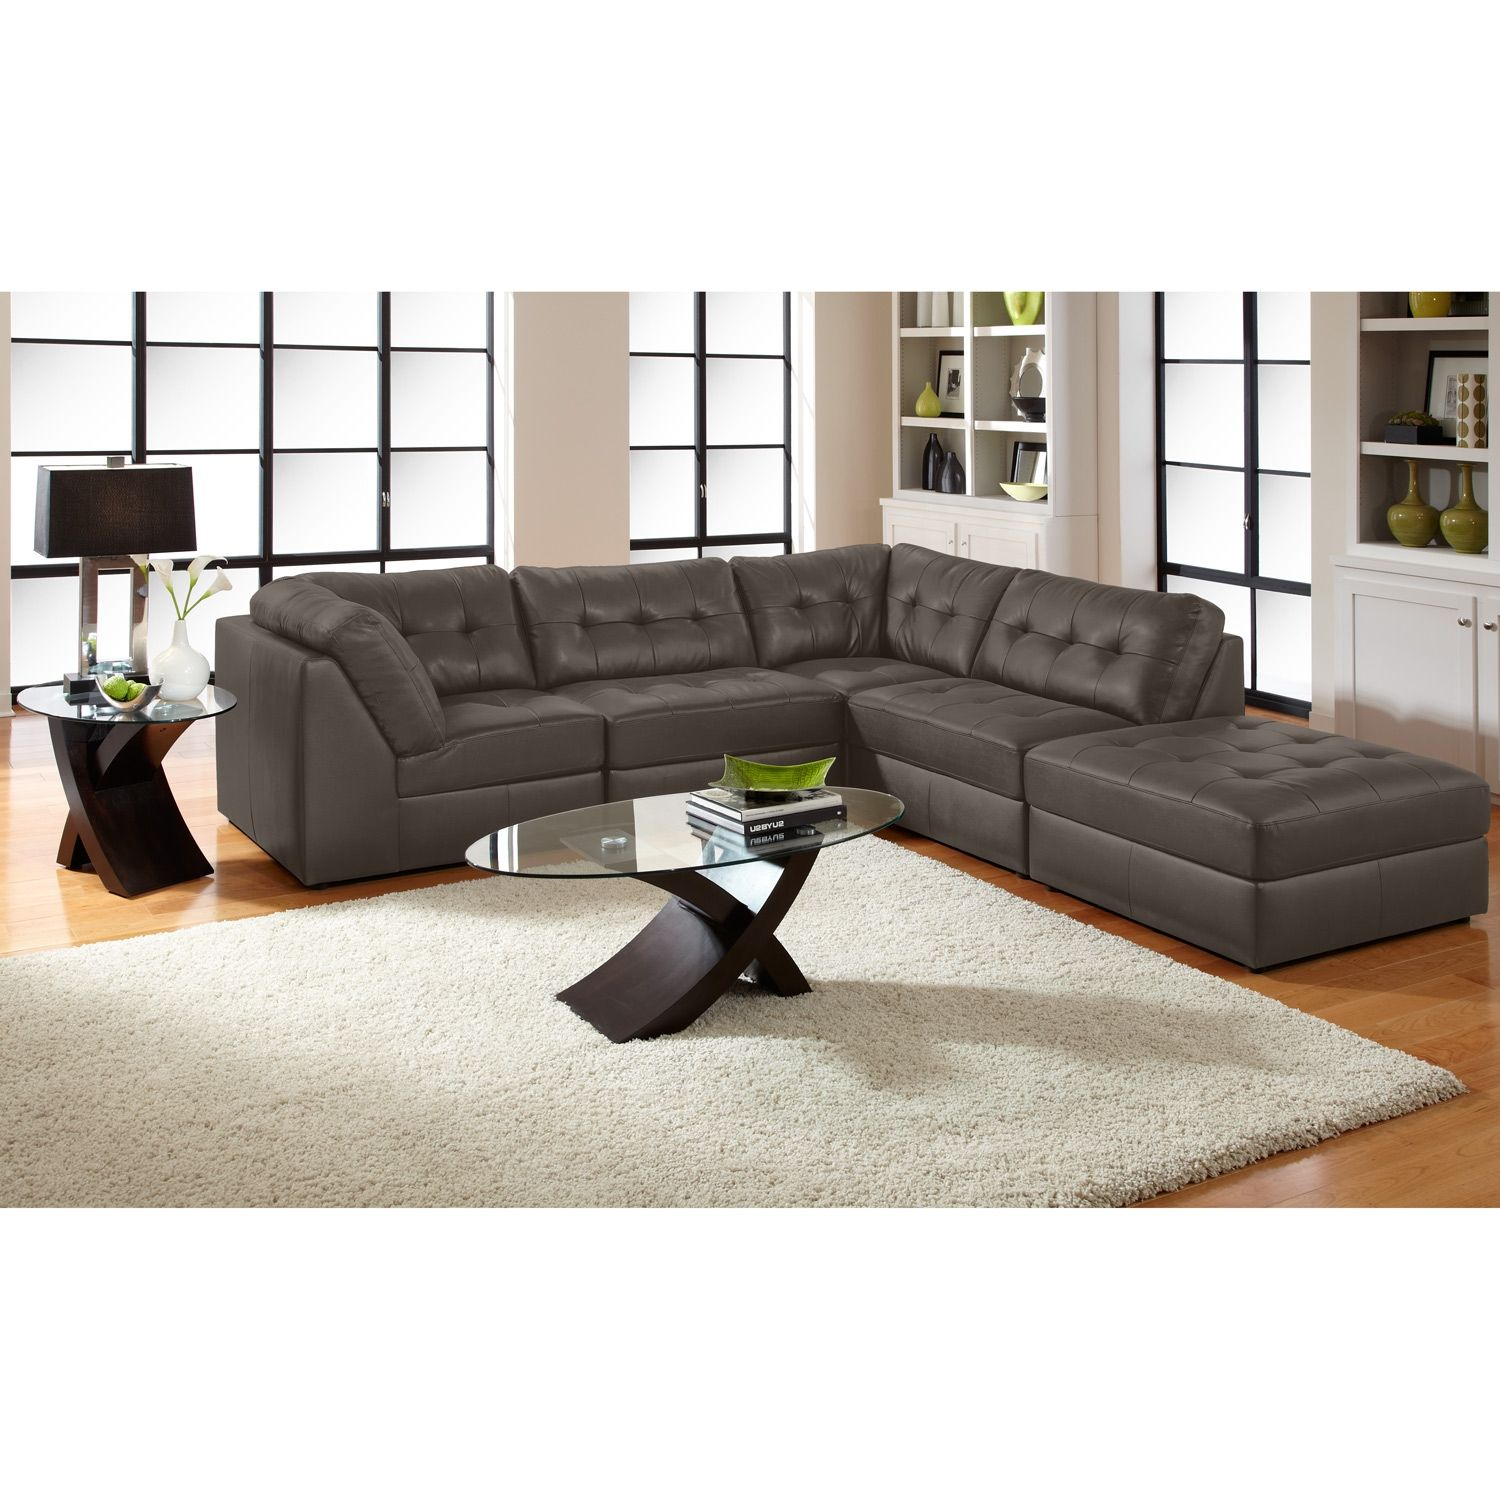 Aventura III Leather 5 Pc. Sectional And Cocktail Ottoman   Value City  Furniture